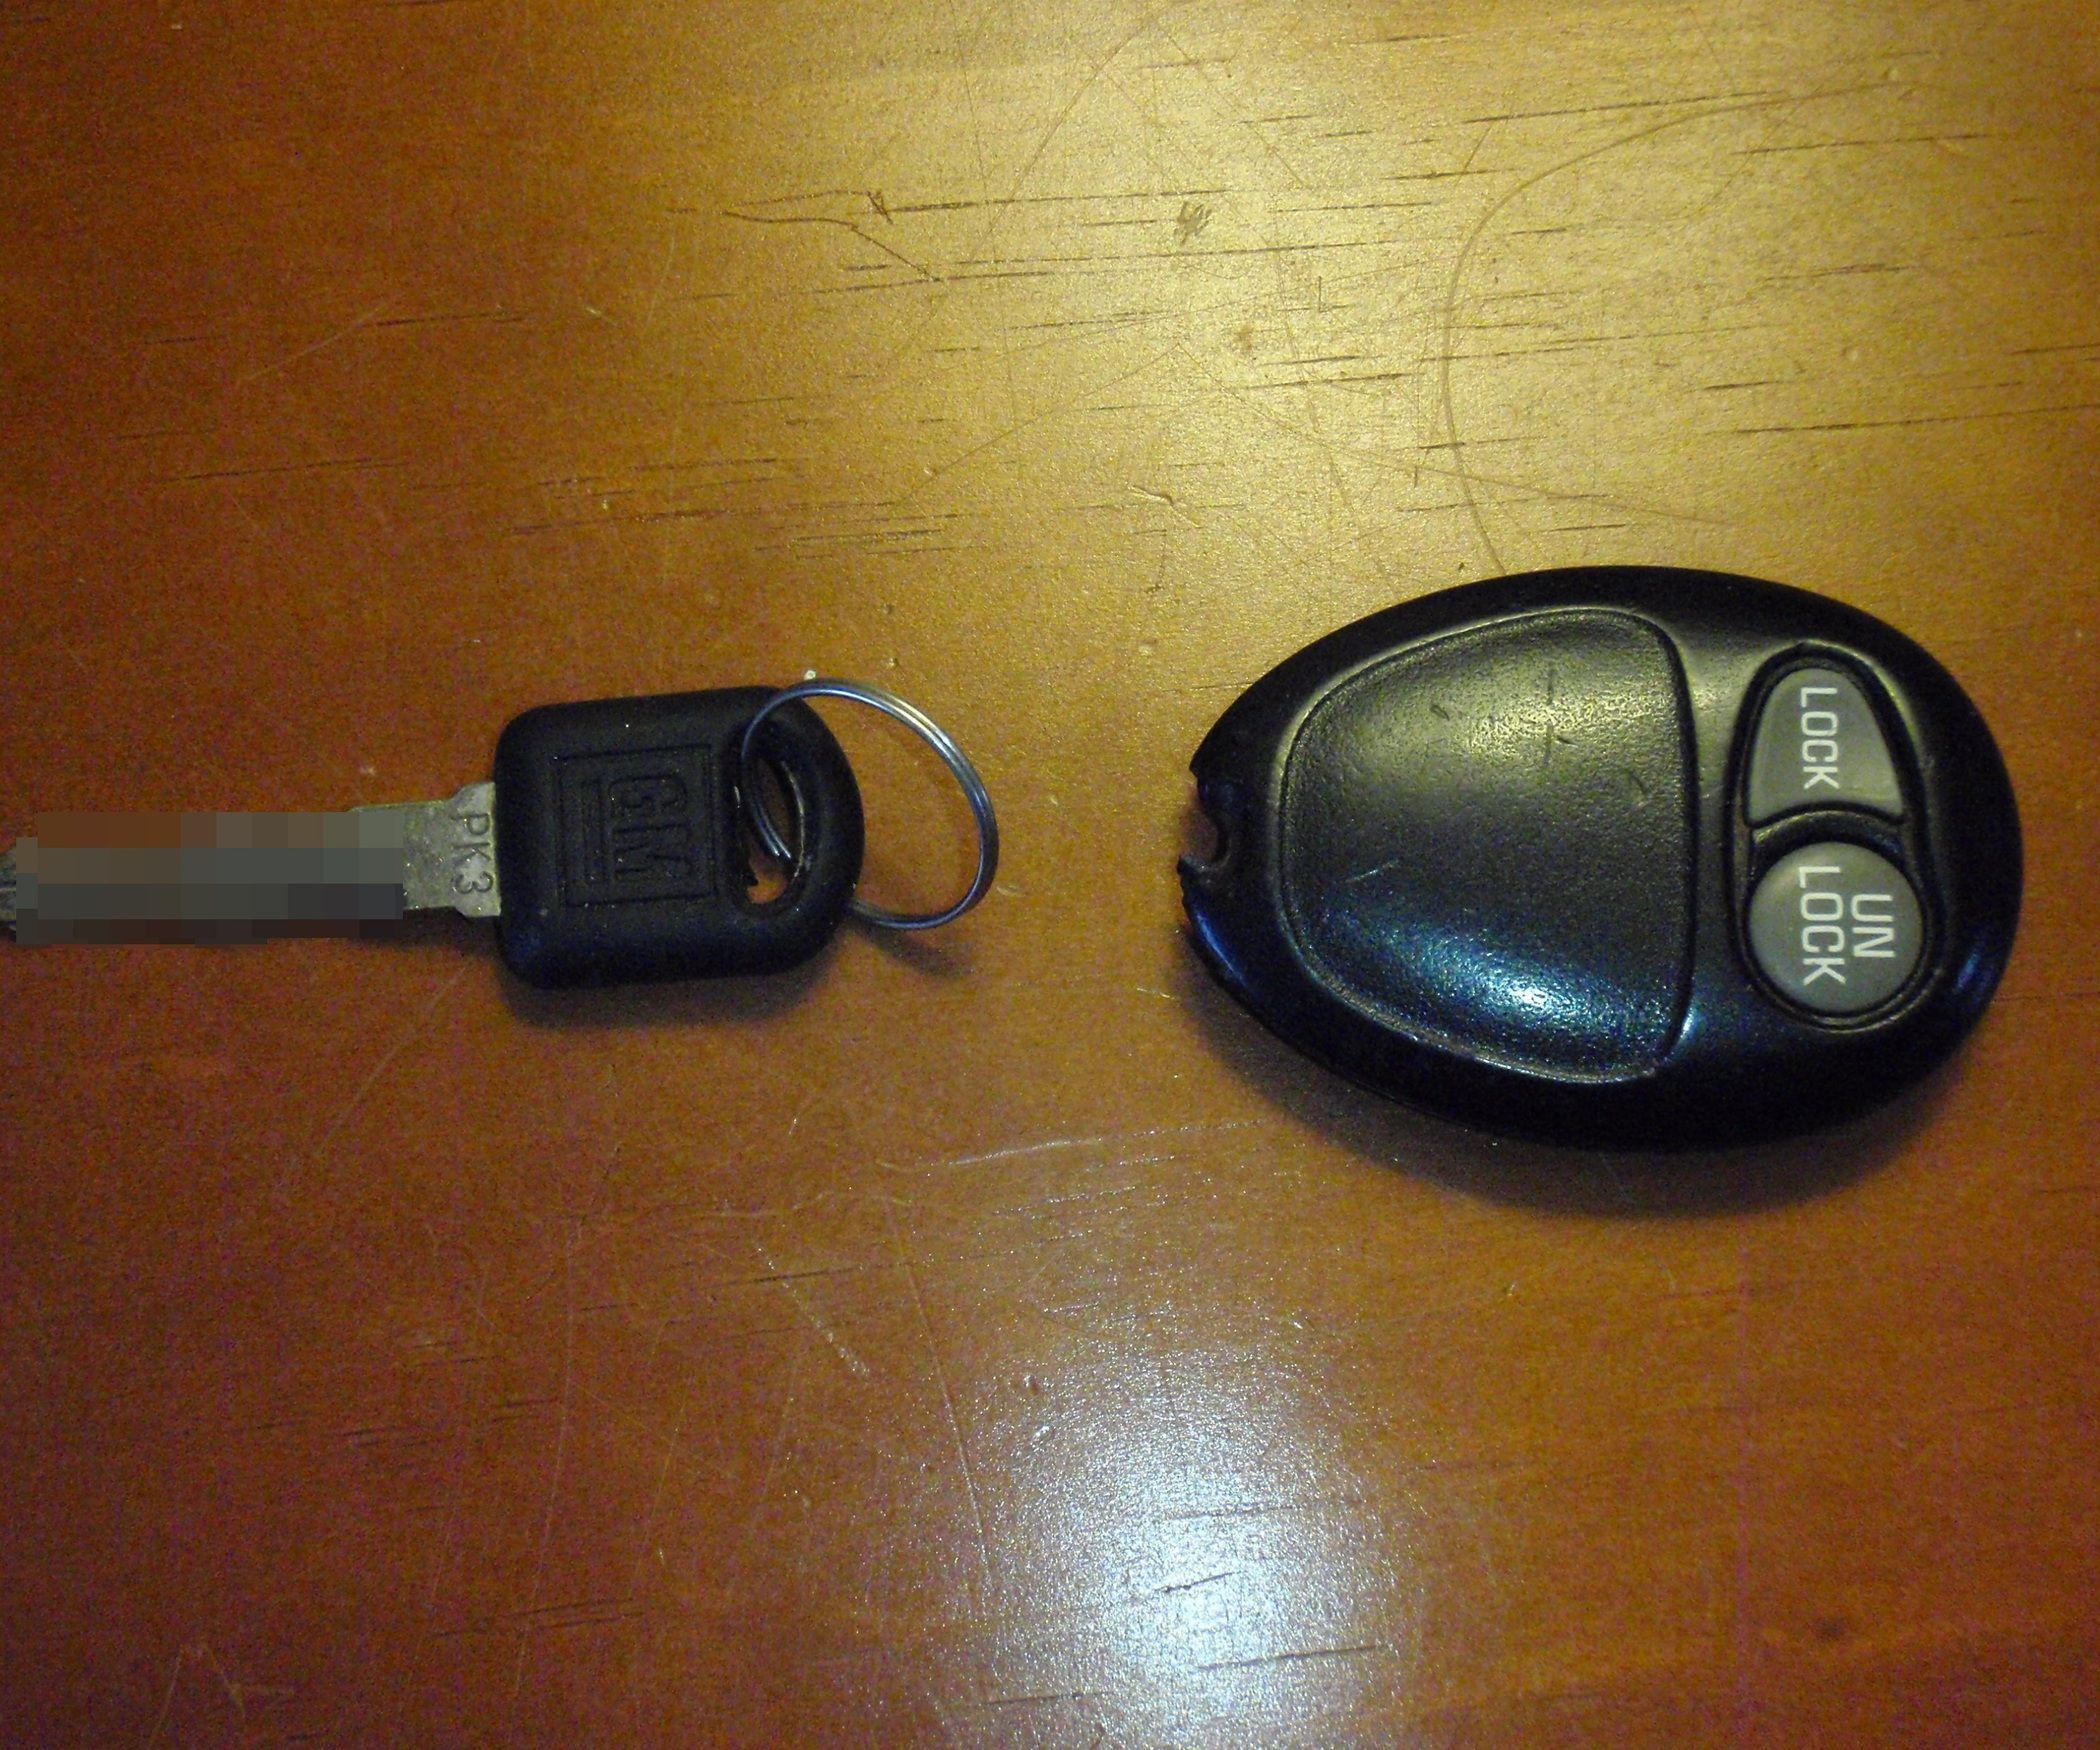 How To Fix A Broken Gm Key Fob Key Fobs Diy Key Diy Fobs